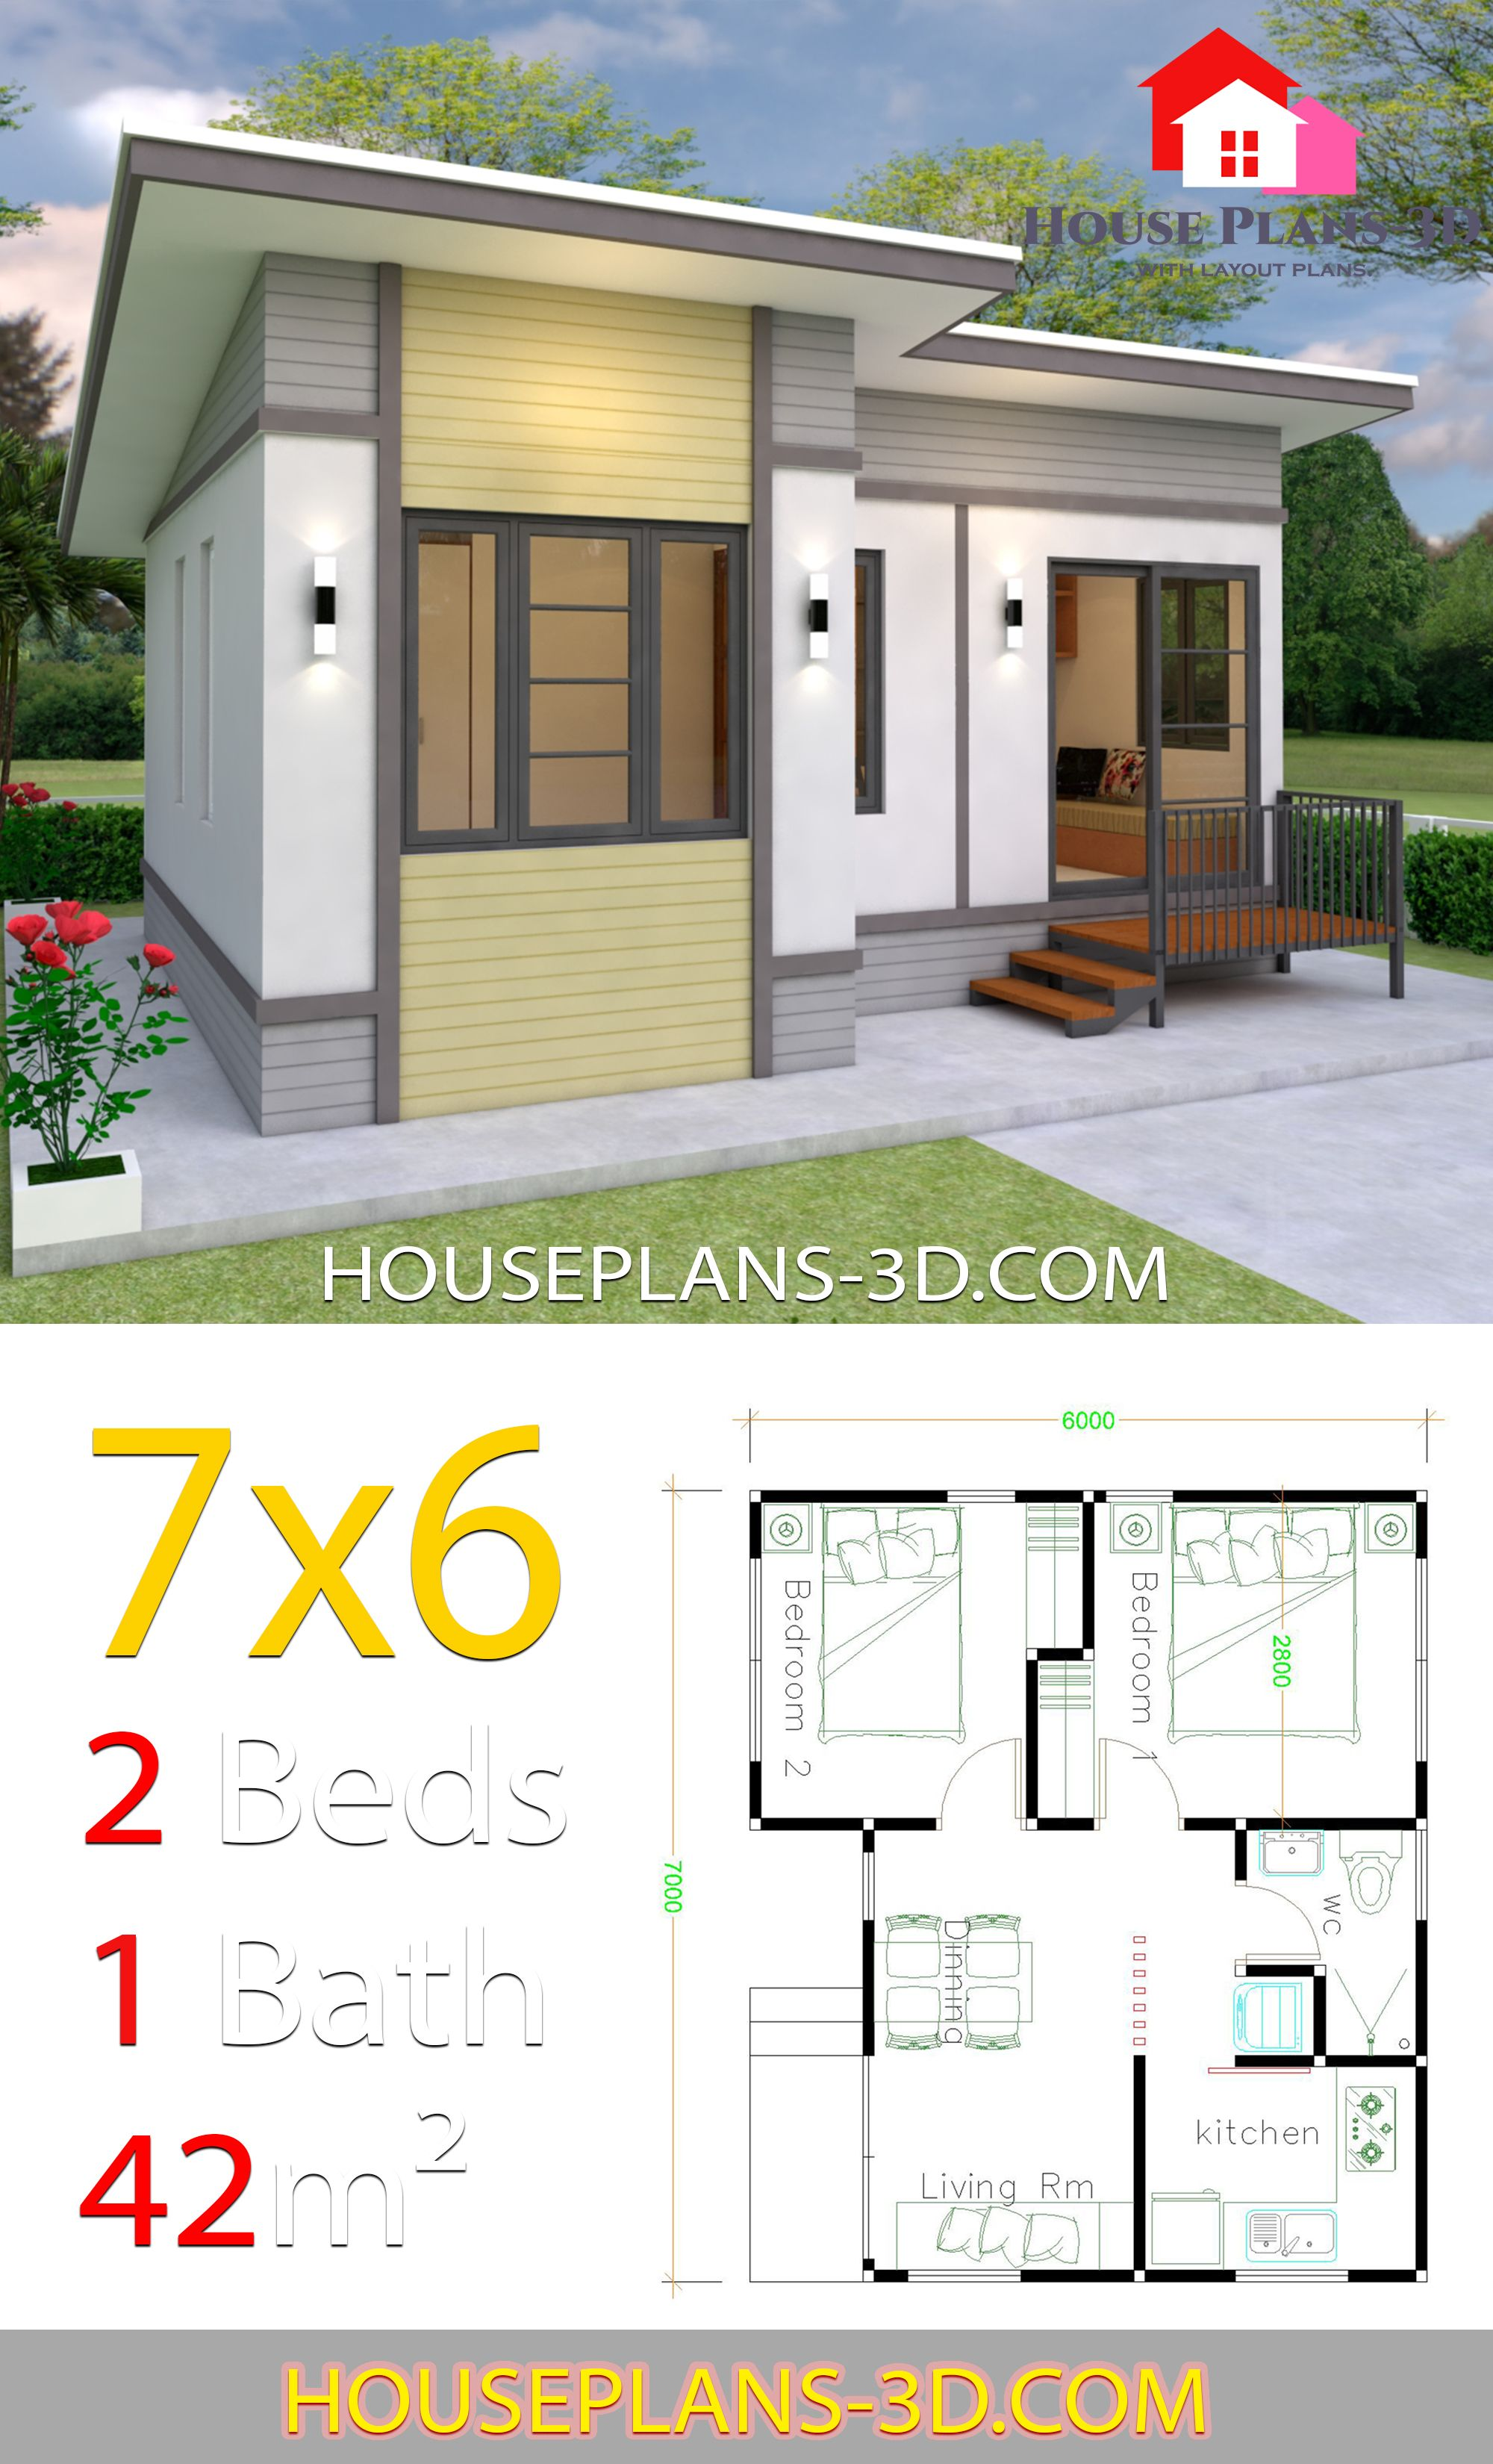 Small House Plans 7x6 With 2 Bedrooms Small House Design Plans